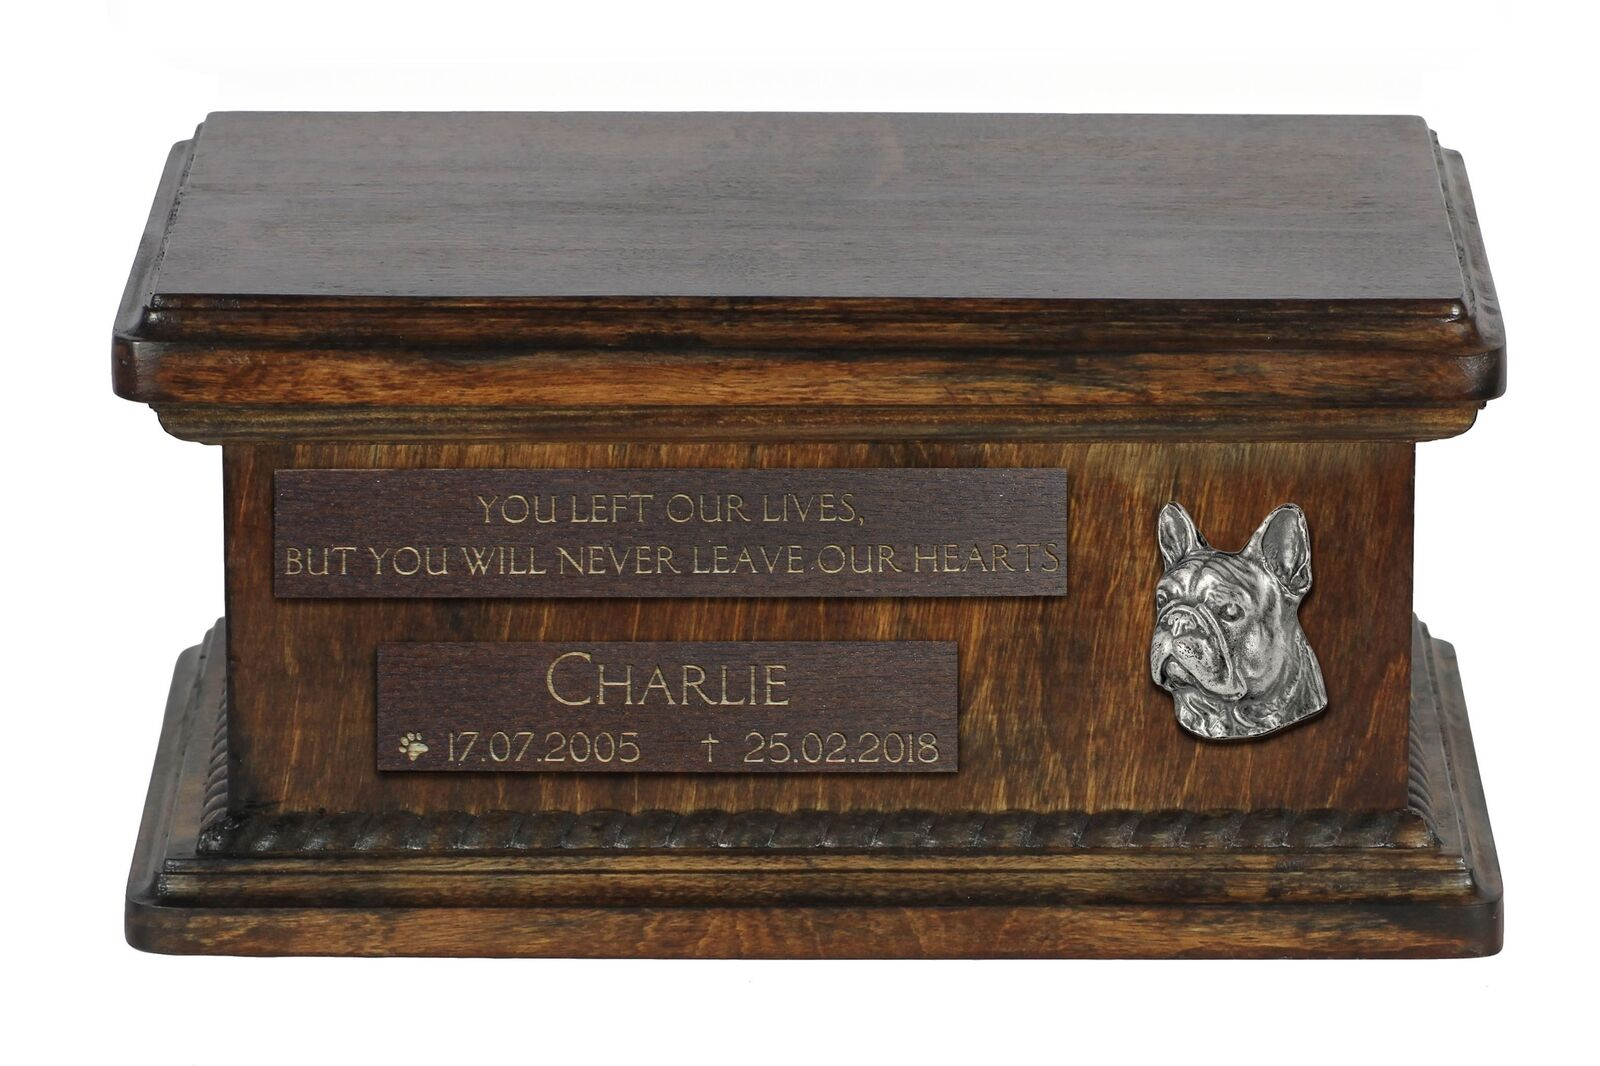 French Bulldog 2  wooden urn for dog's ashes, low model, Art Dog